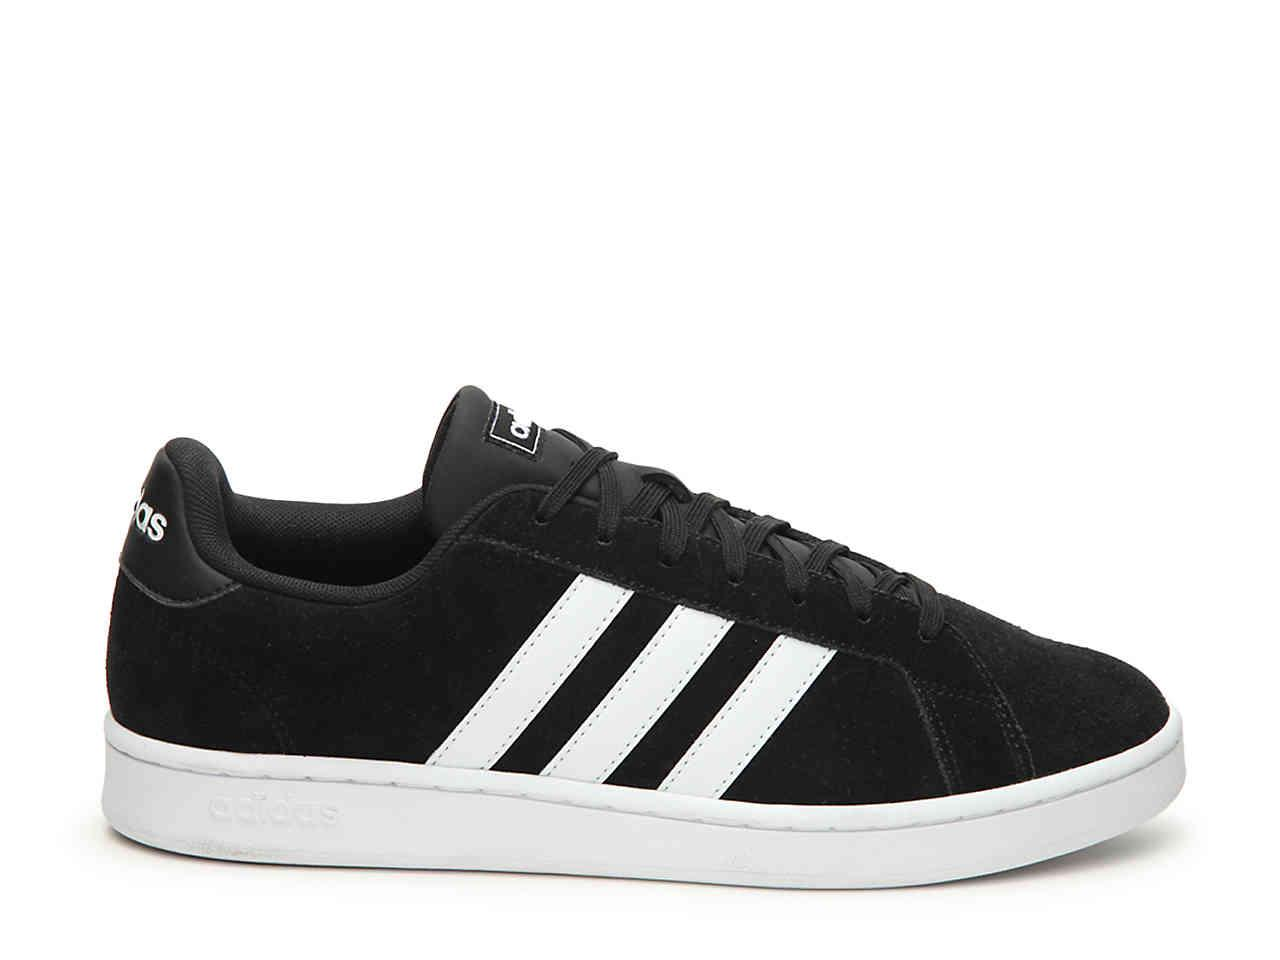 official photos ea06f a9678 adidas Grand Court Sneaker in Black for Men - Lyst